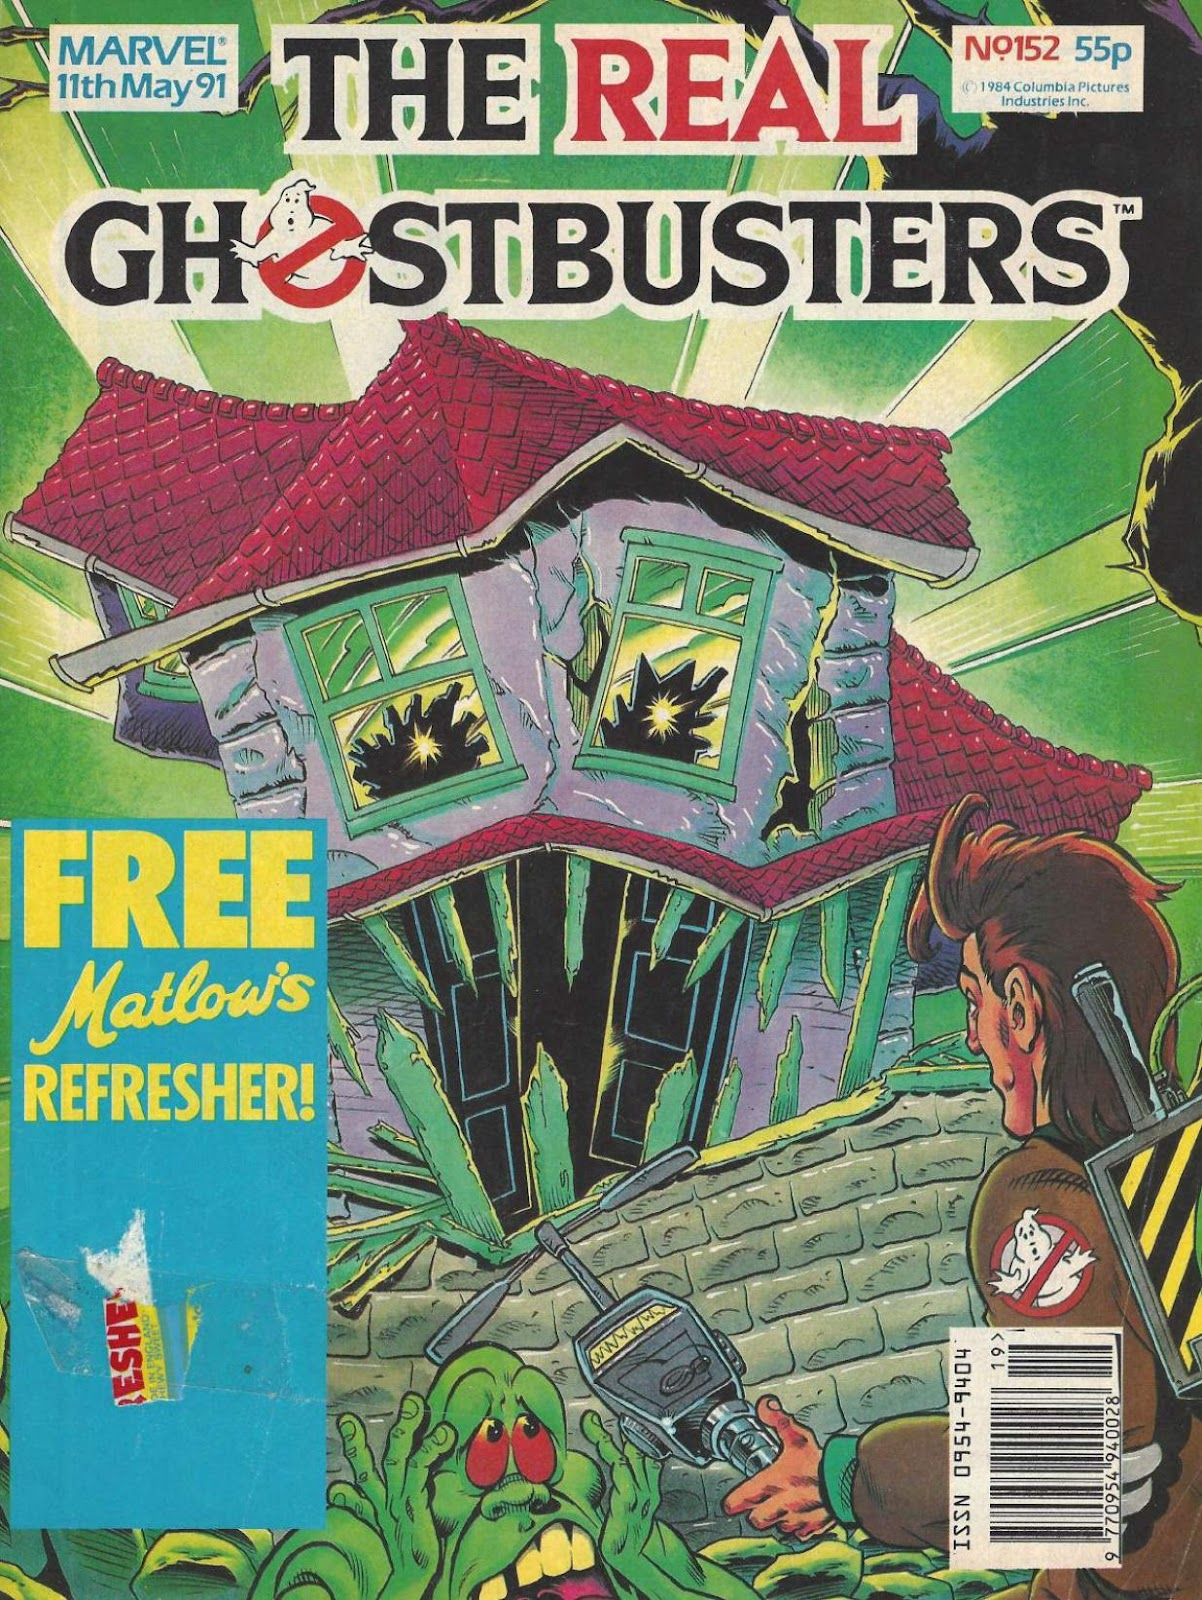 The Real Ghostbusters 152 Page 1